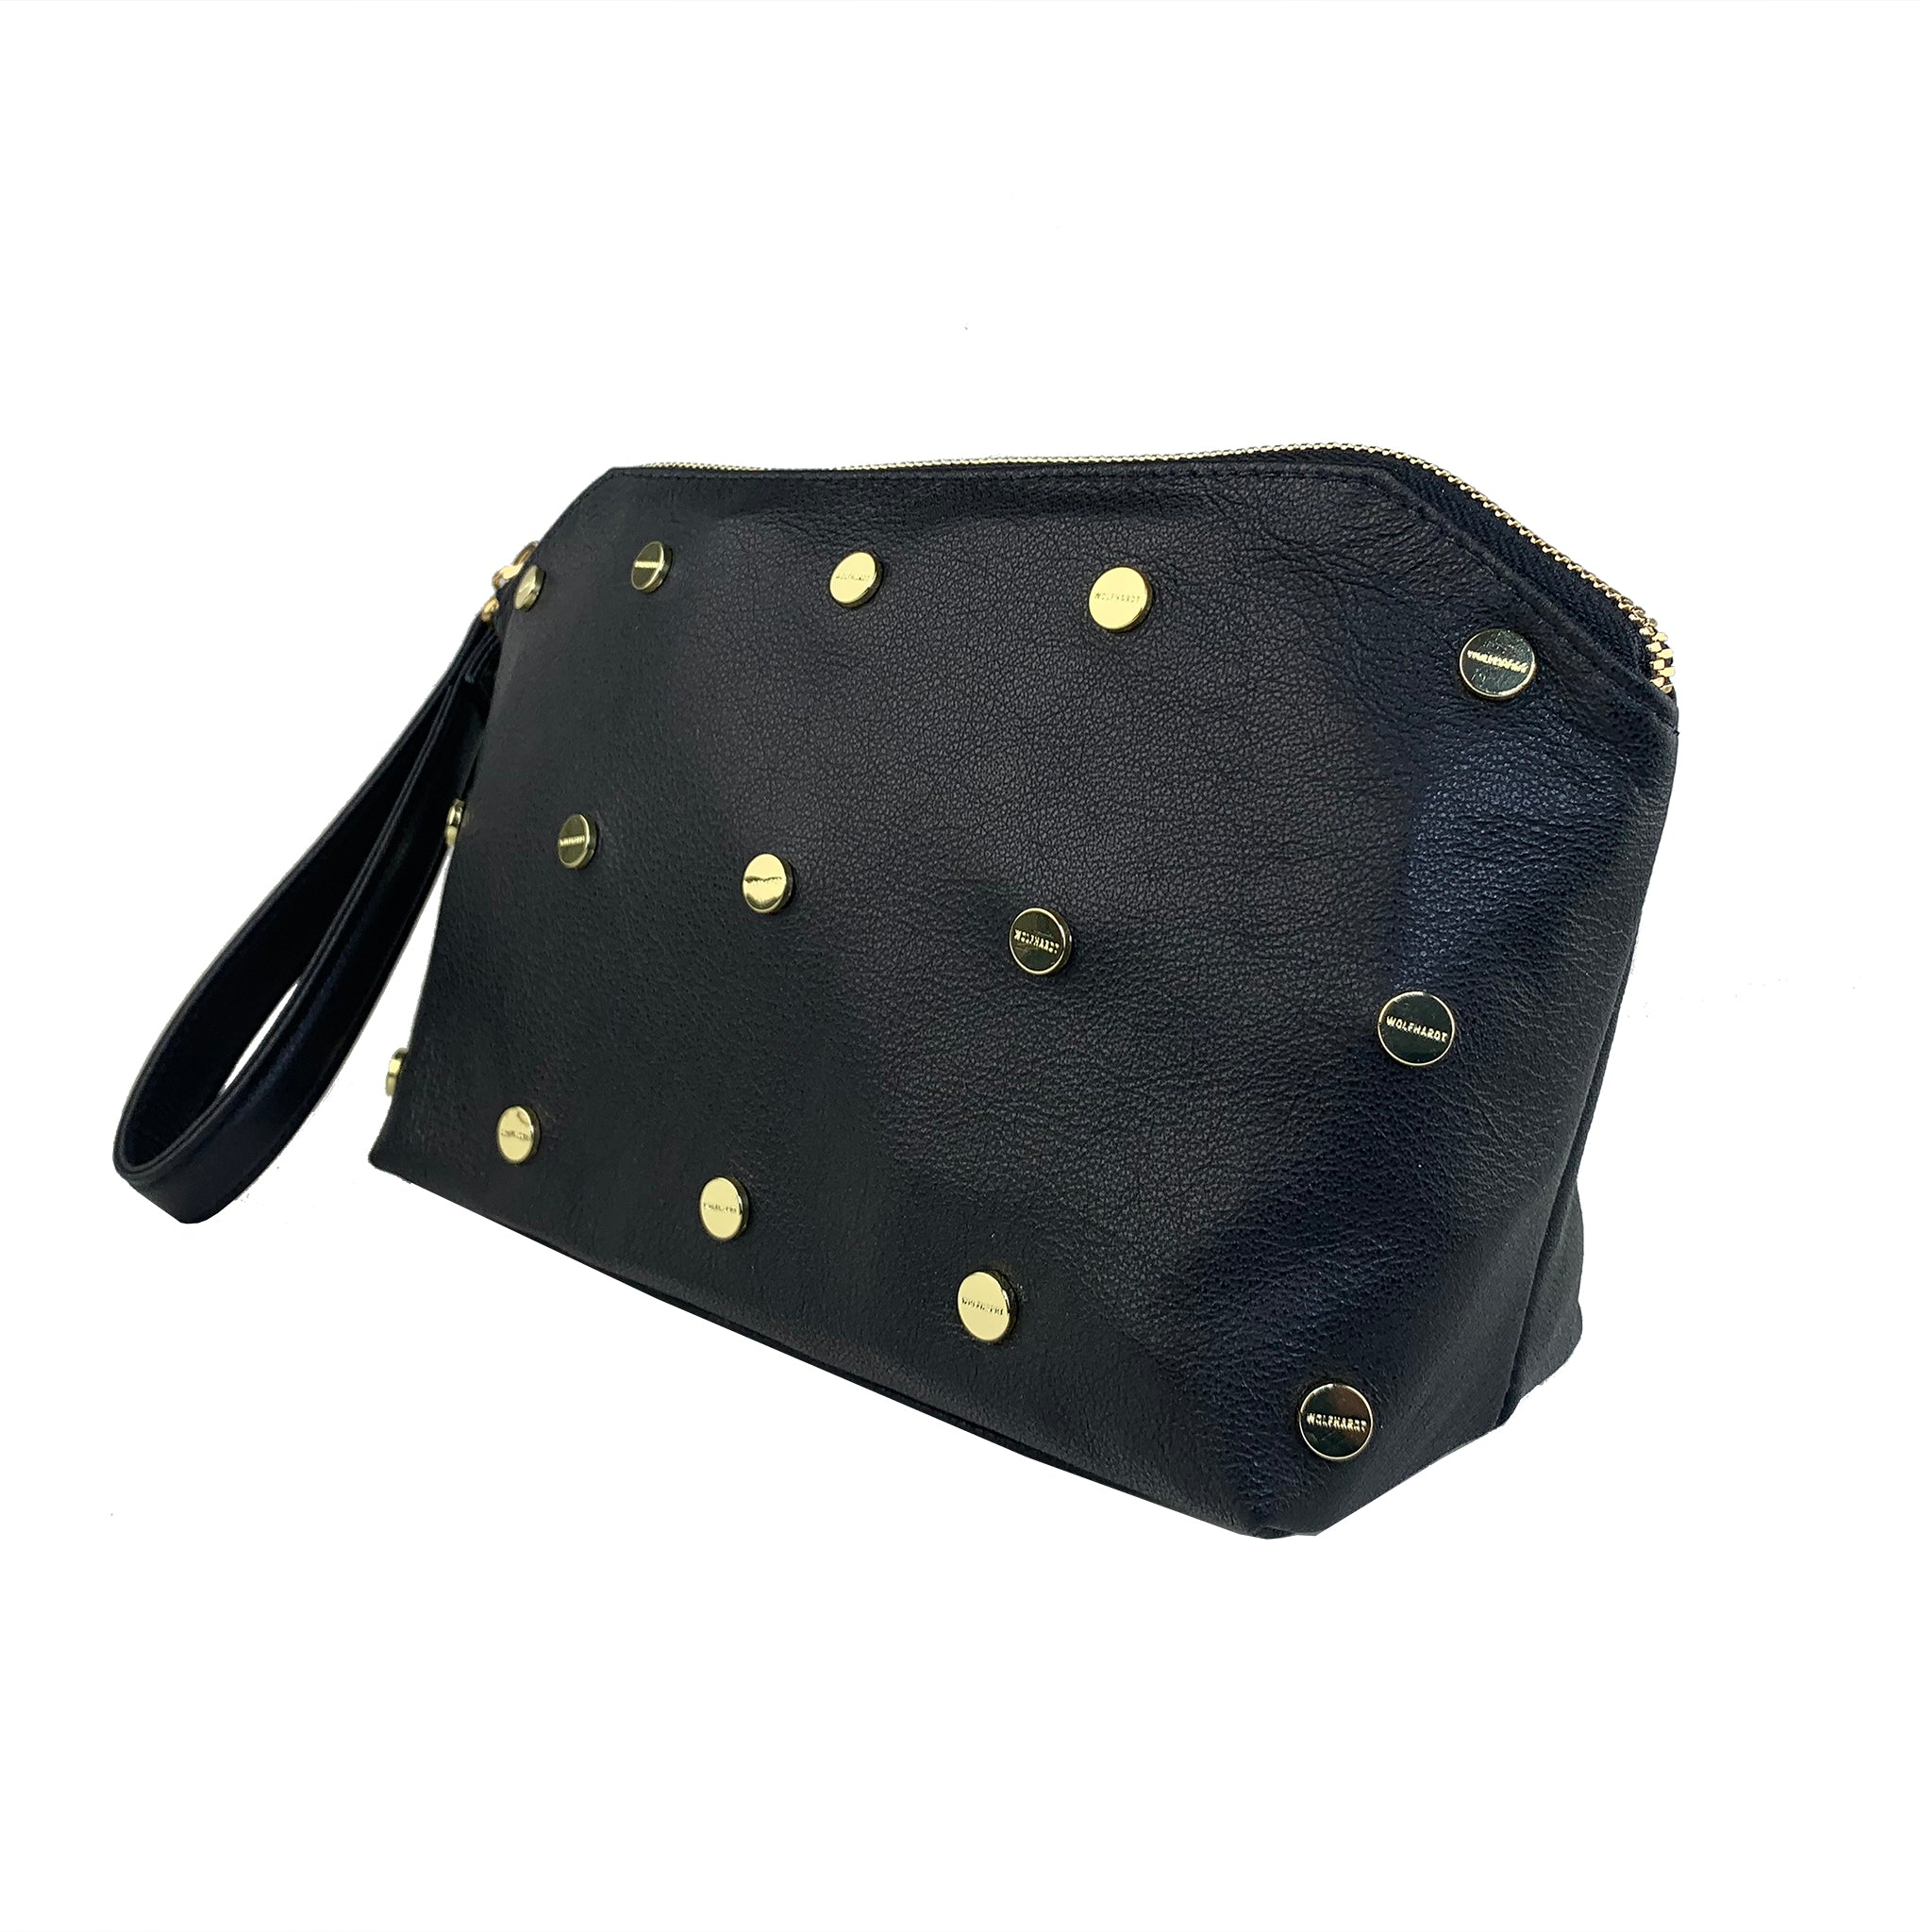 BLACK LEATHER WOMEN'S STUDDED EBEN CLUTCH